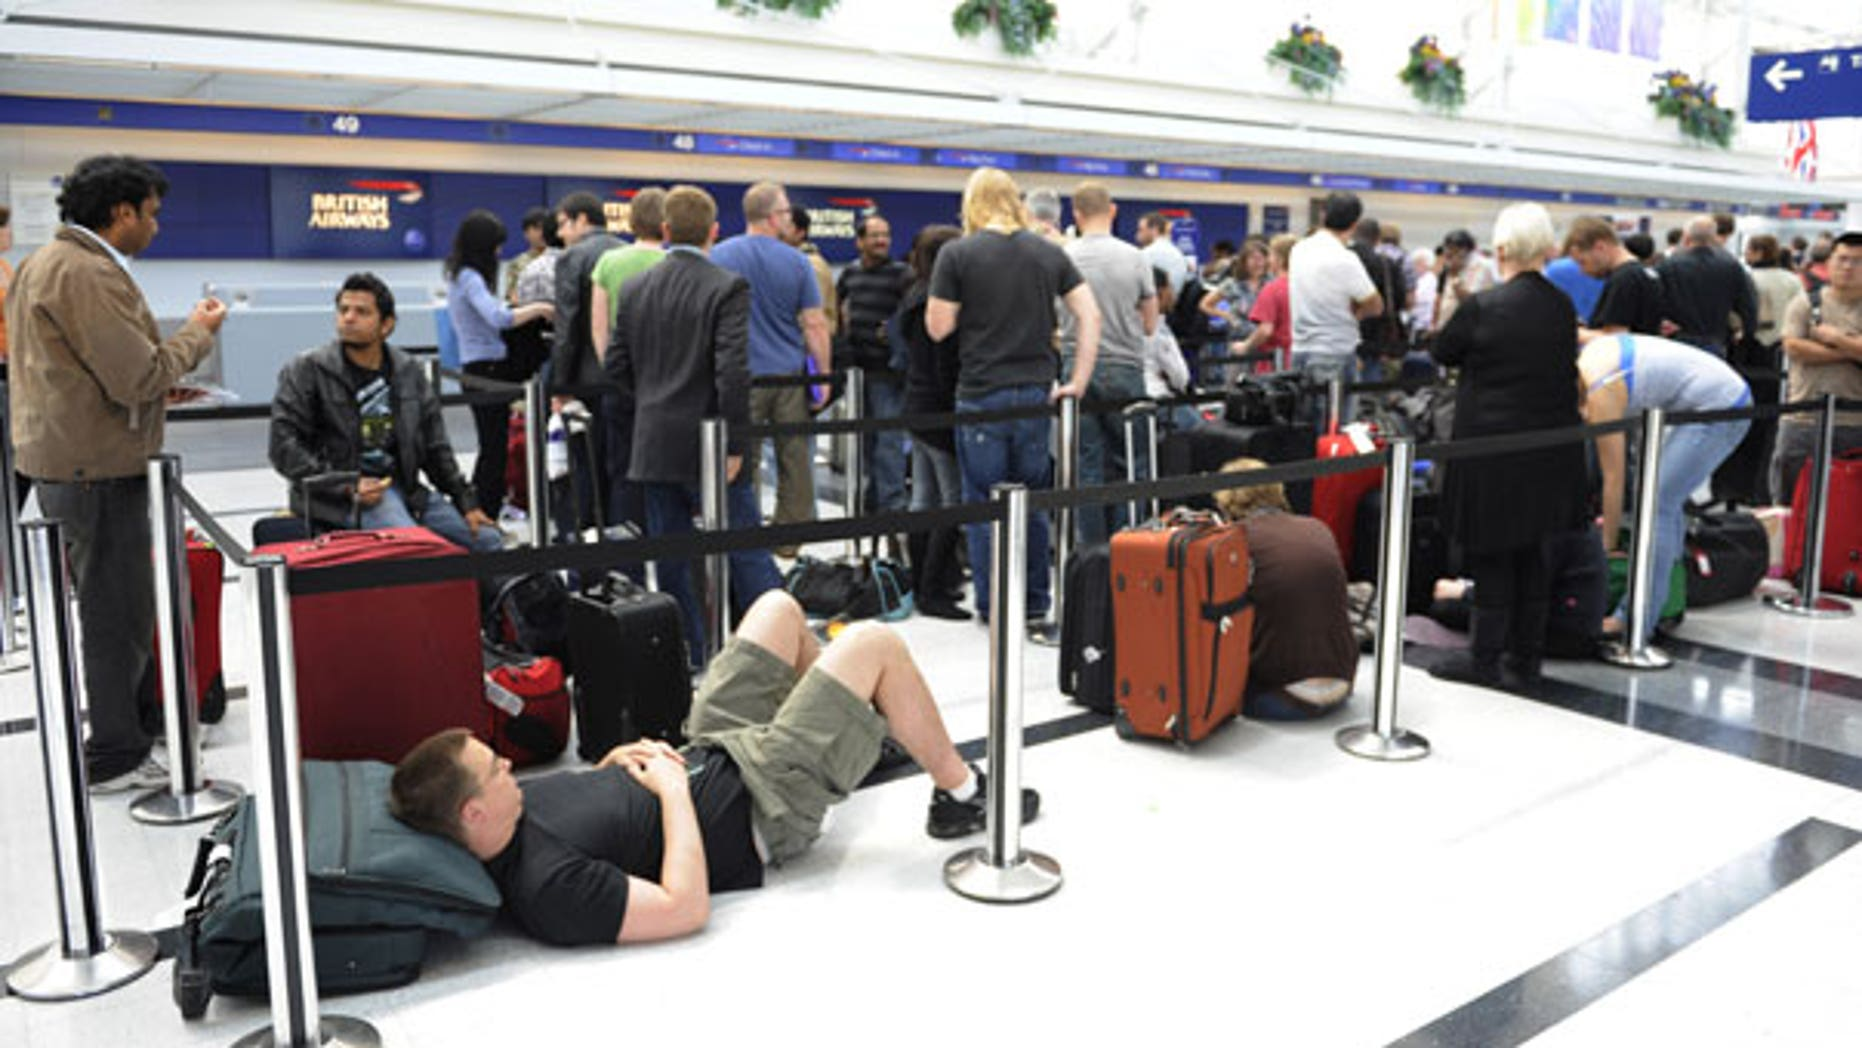 April 15: People wait in line at British Airways to try and catch flights to Europe at O'Hare International Airport in Chicago. (AP)